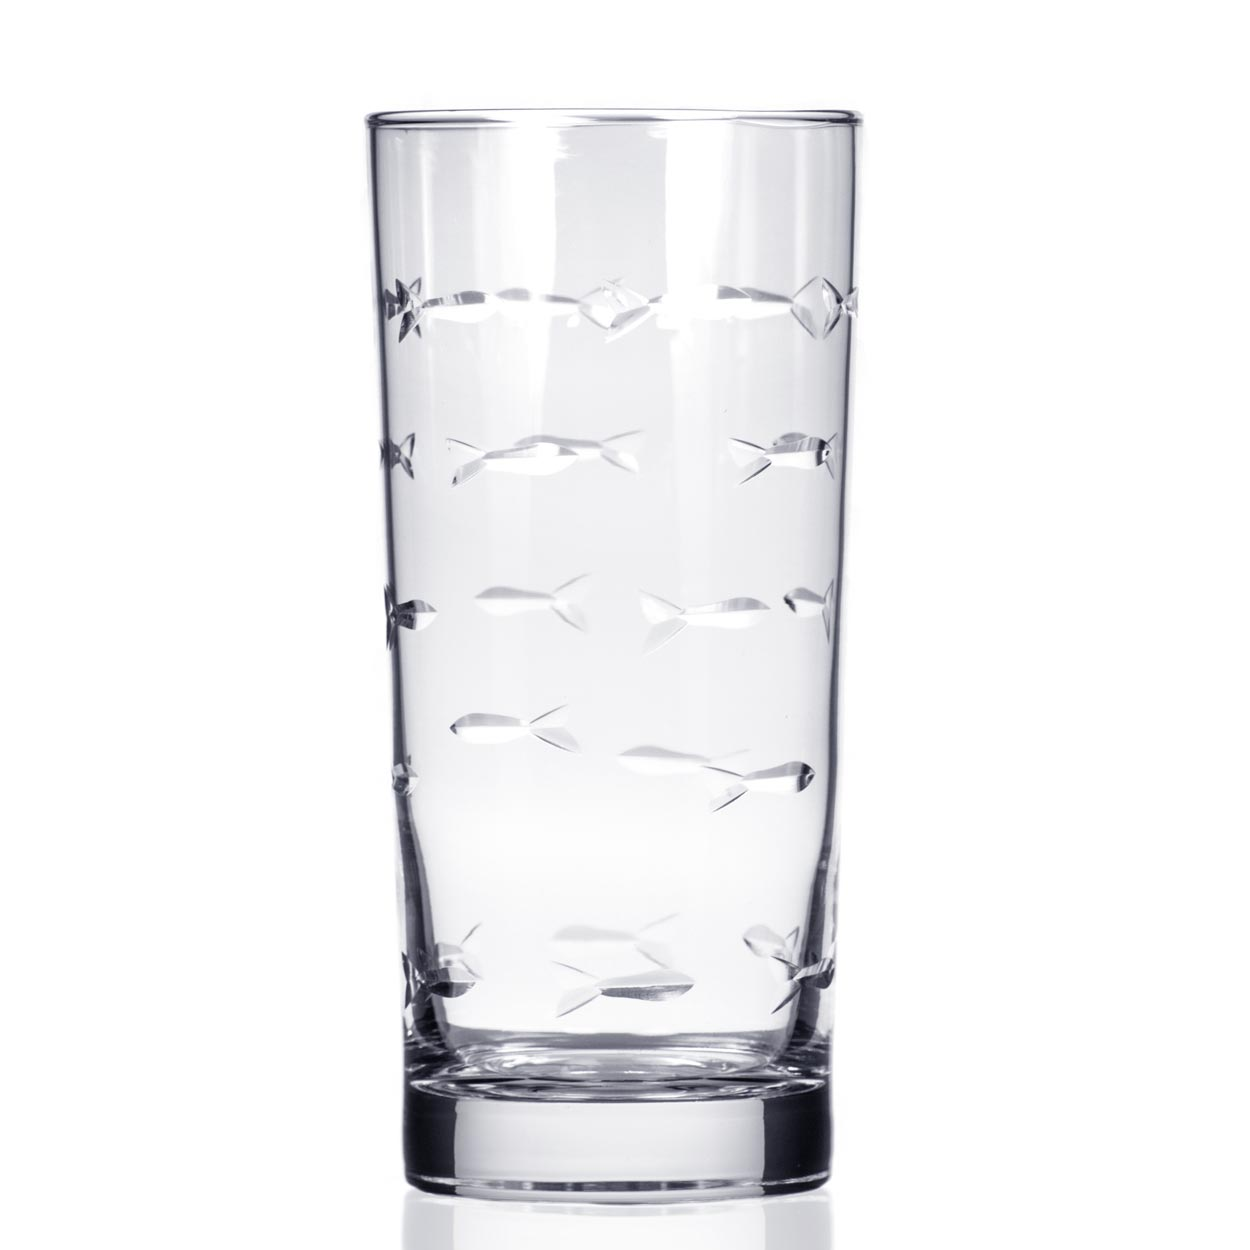 Rolf Glass School of Fish Highball Glasses 15 oz. (Set of 4)